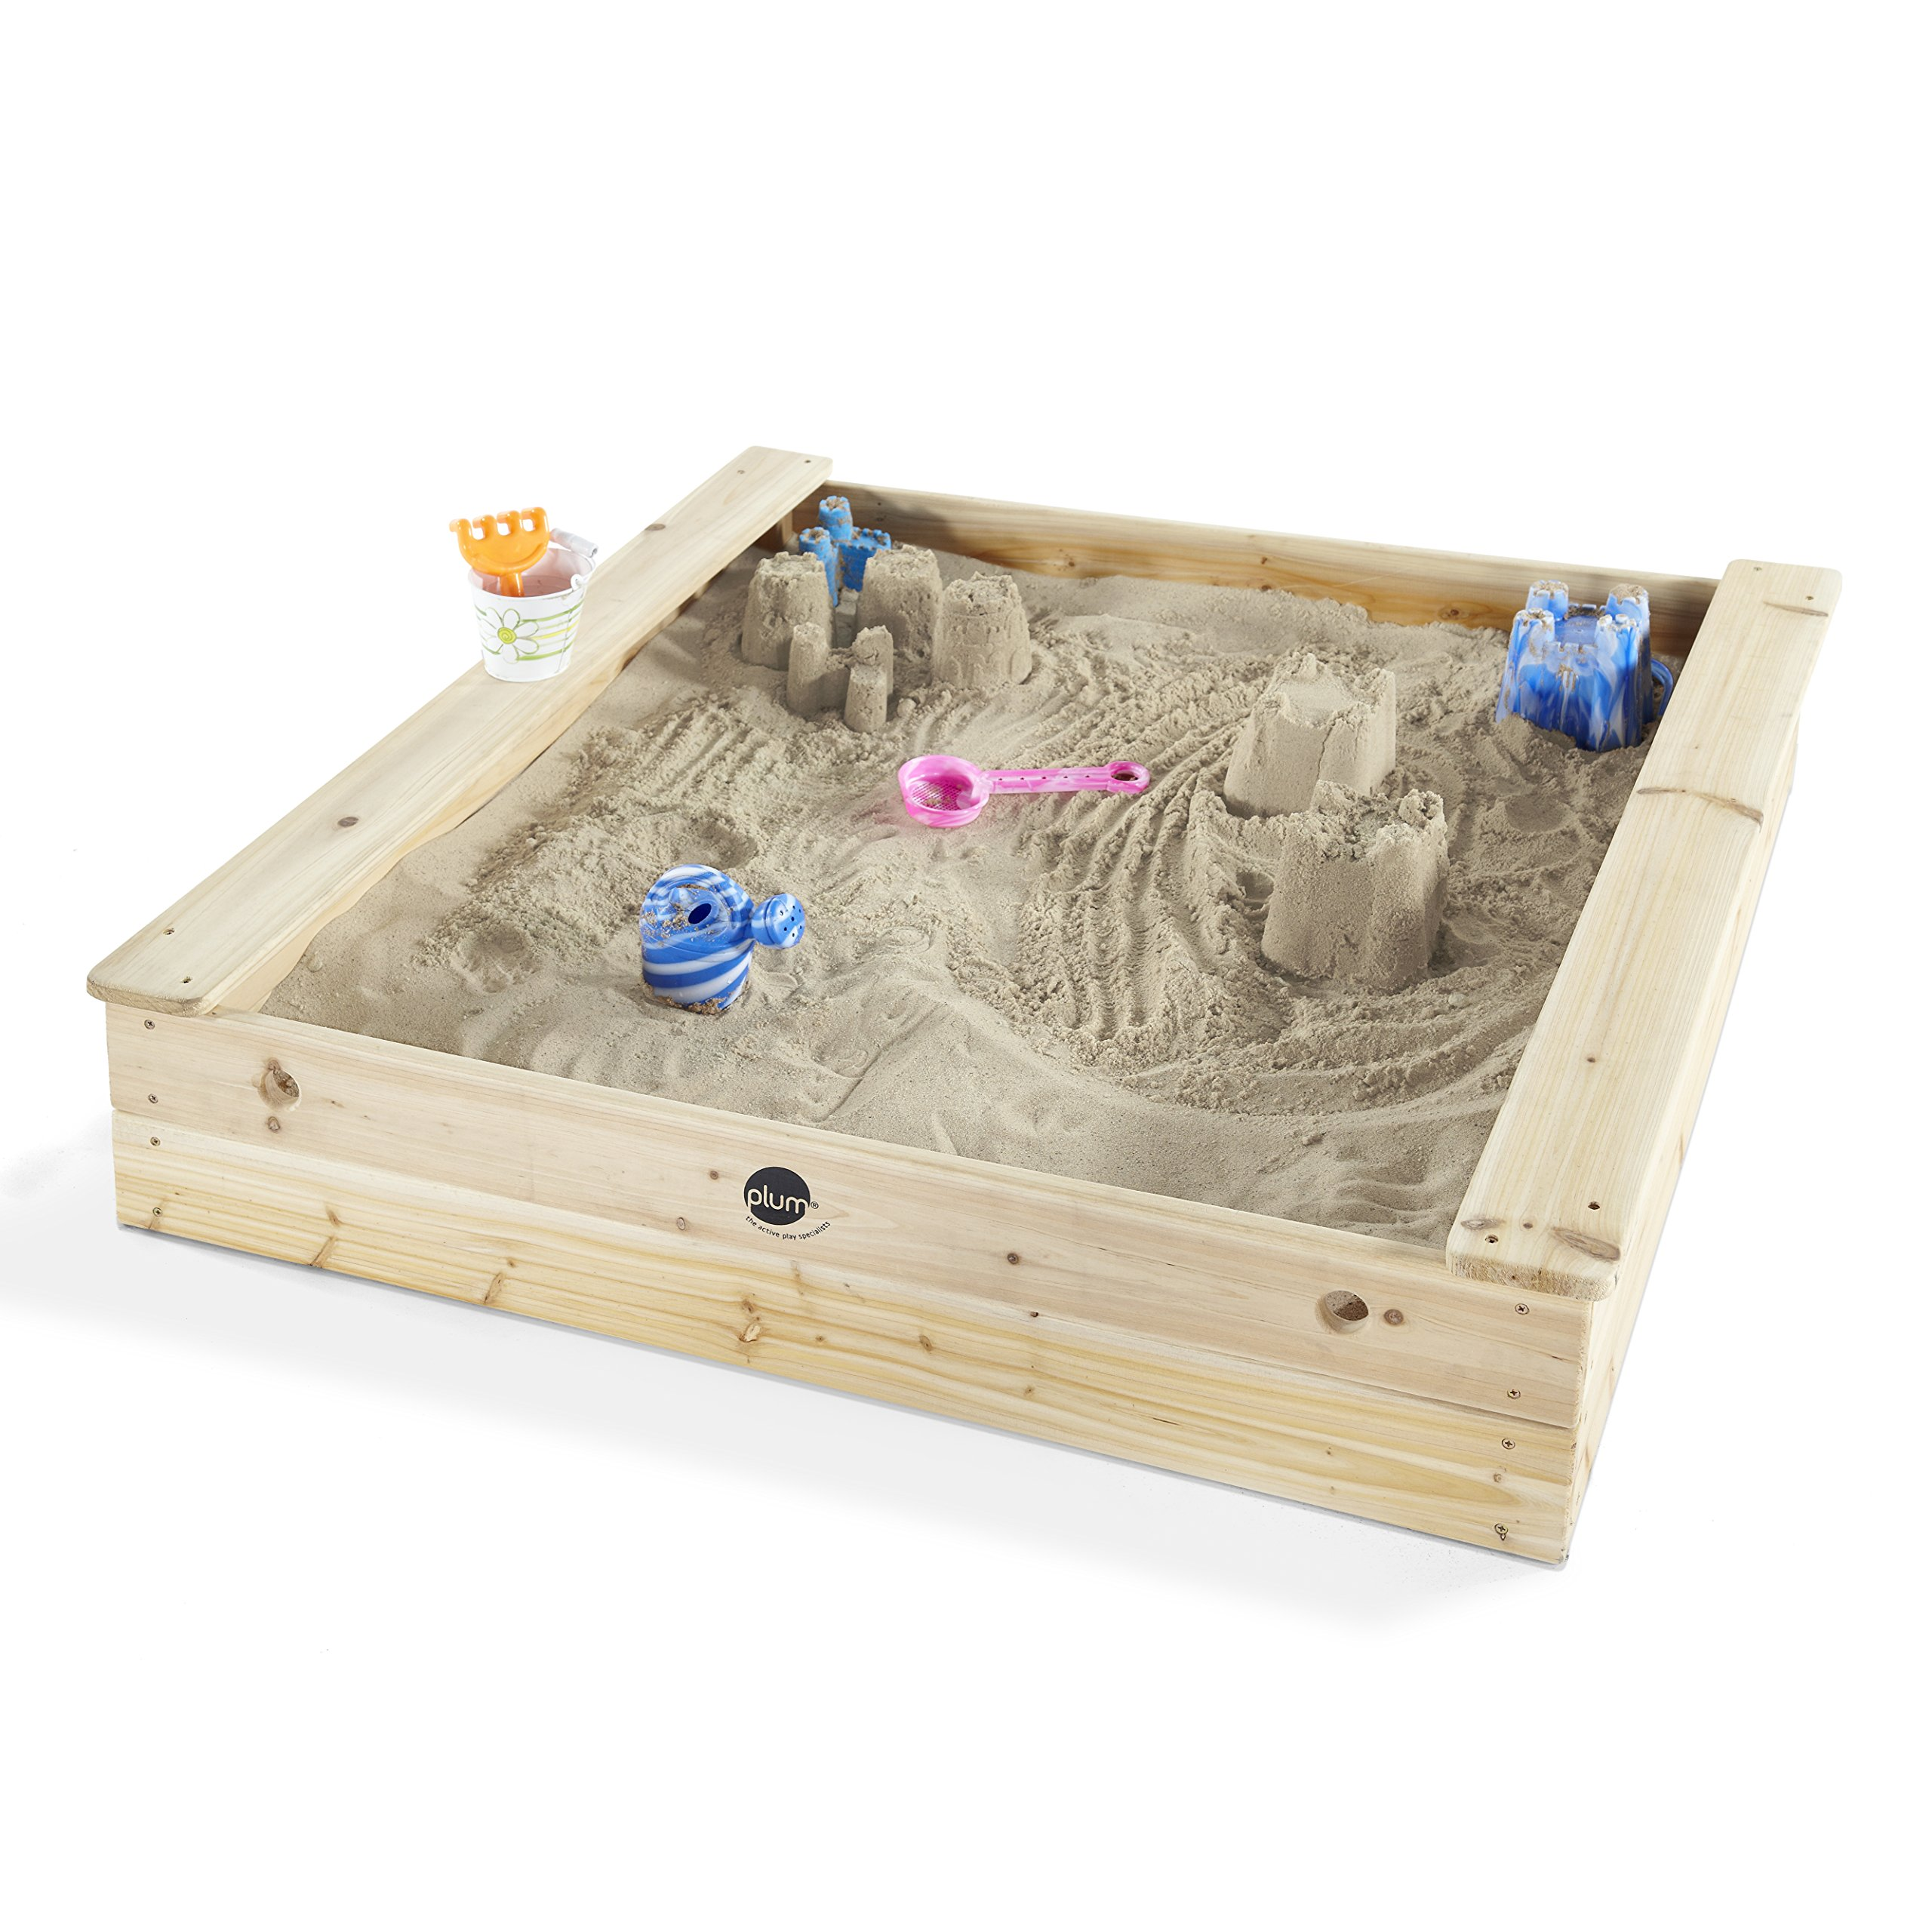 Plum Square Outdoor Play Wooden Sand Pit by Plum